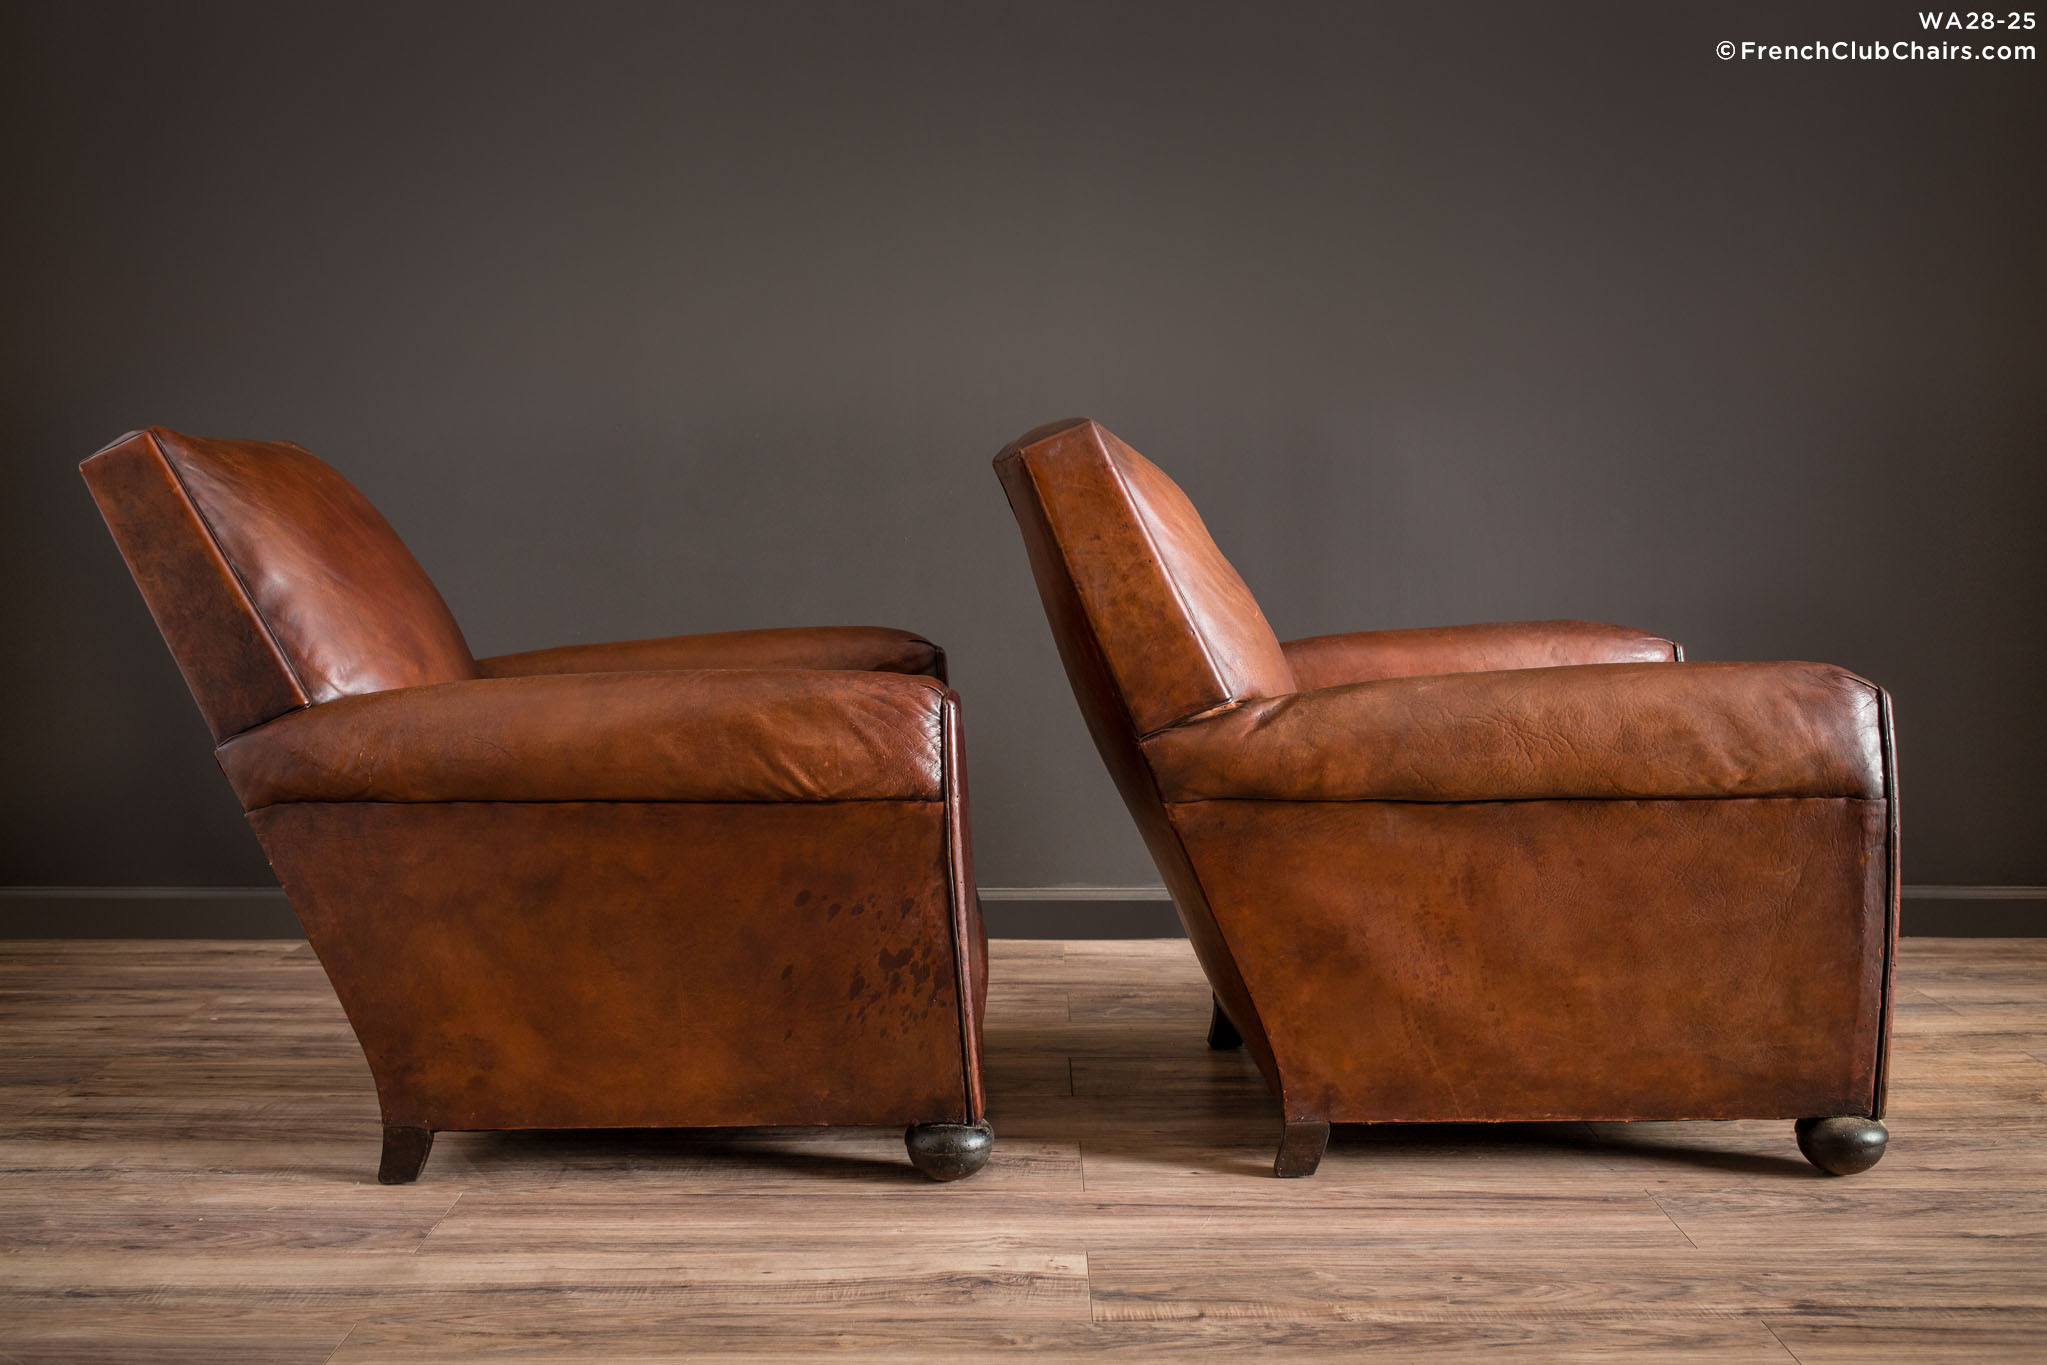 WA_28-25_Rennes_Squareback_Pair_R_3RT1-williams-antiks-leather-french-club-chair-wa_fcccom